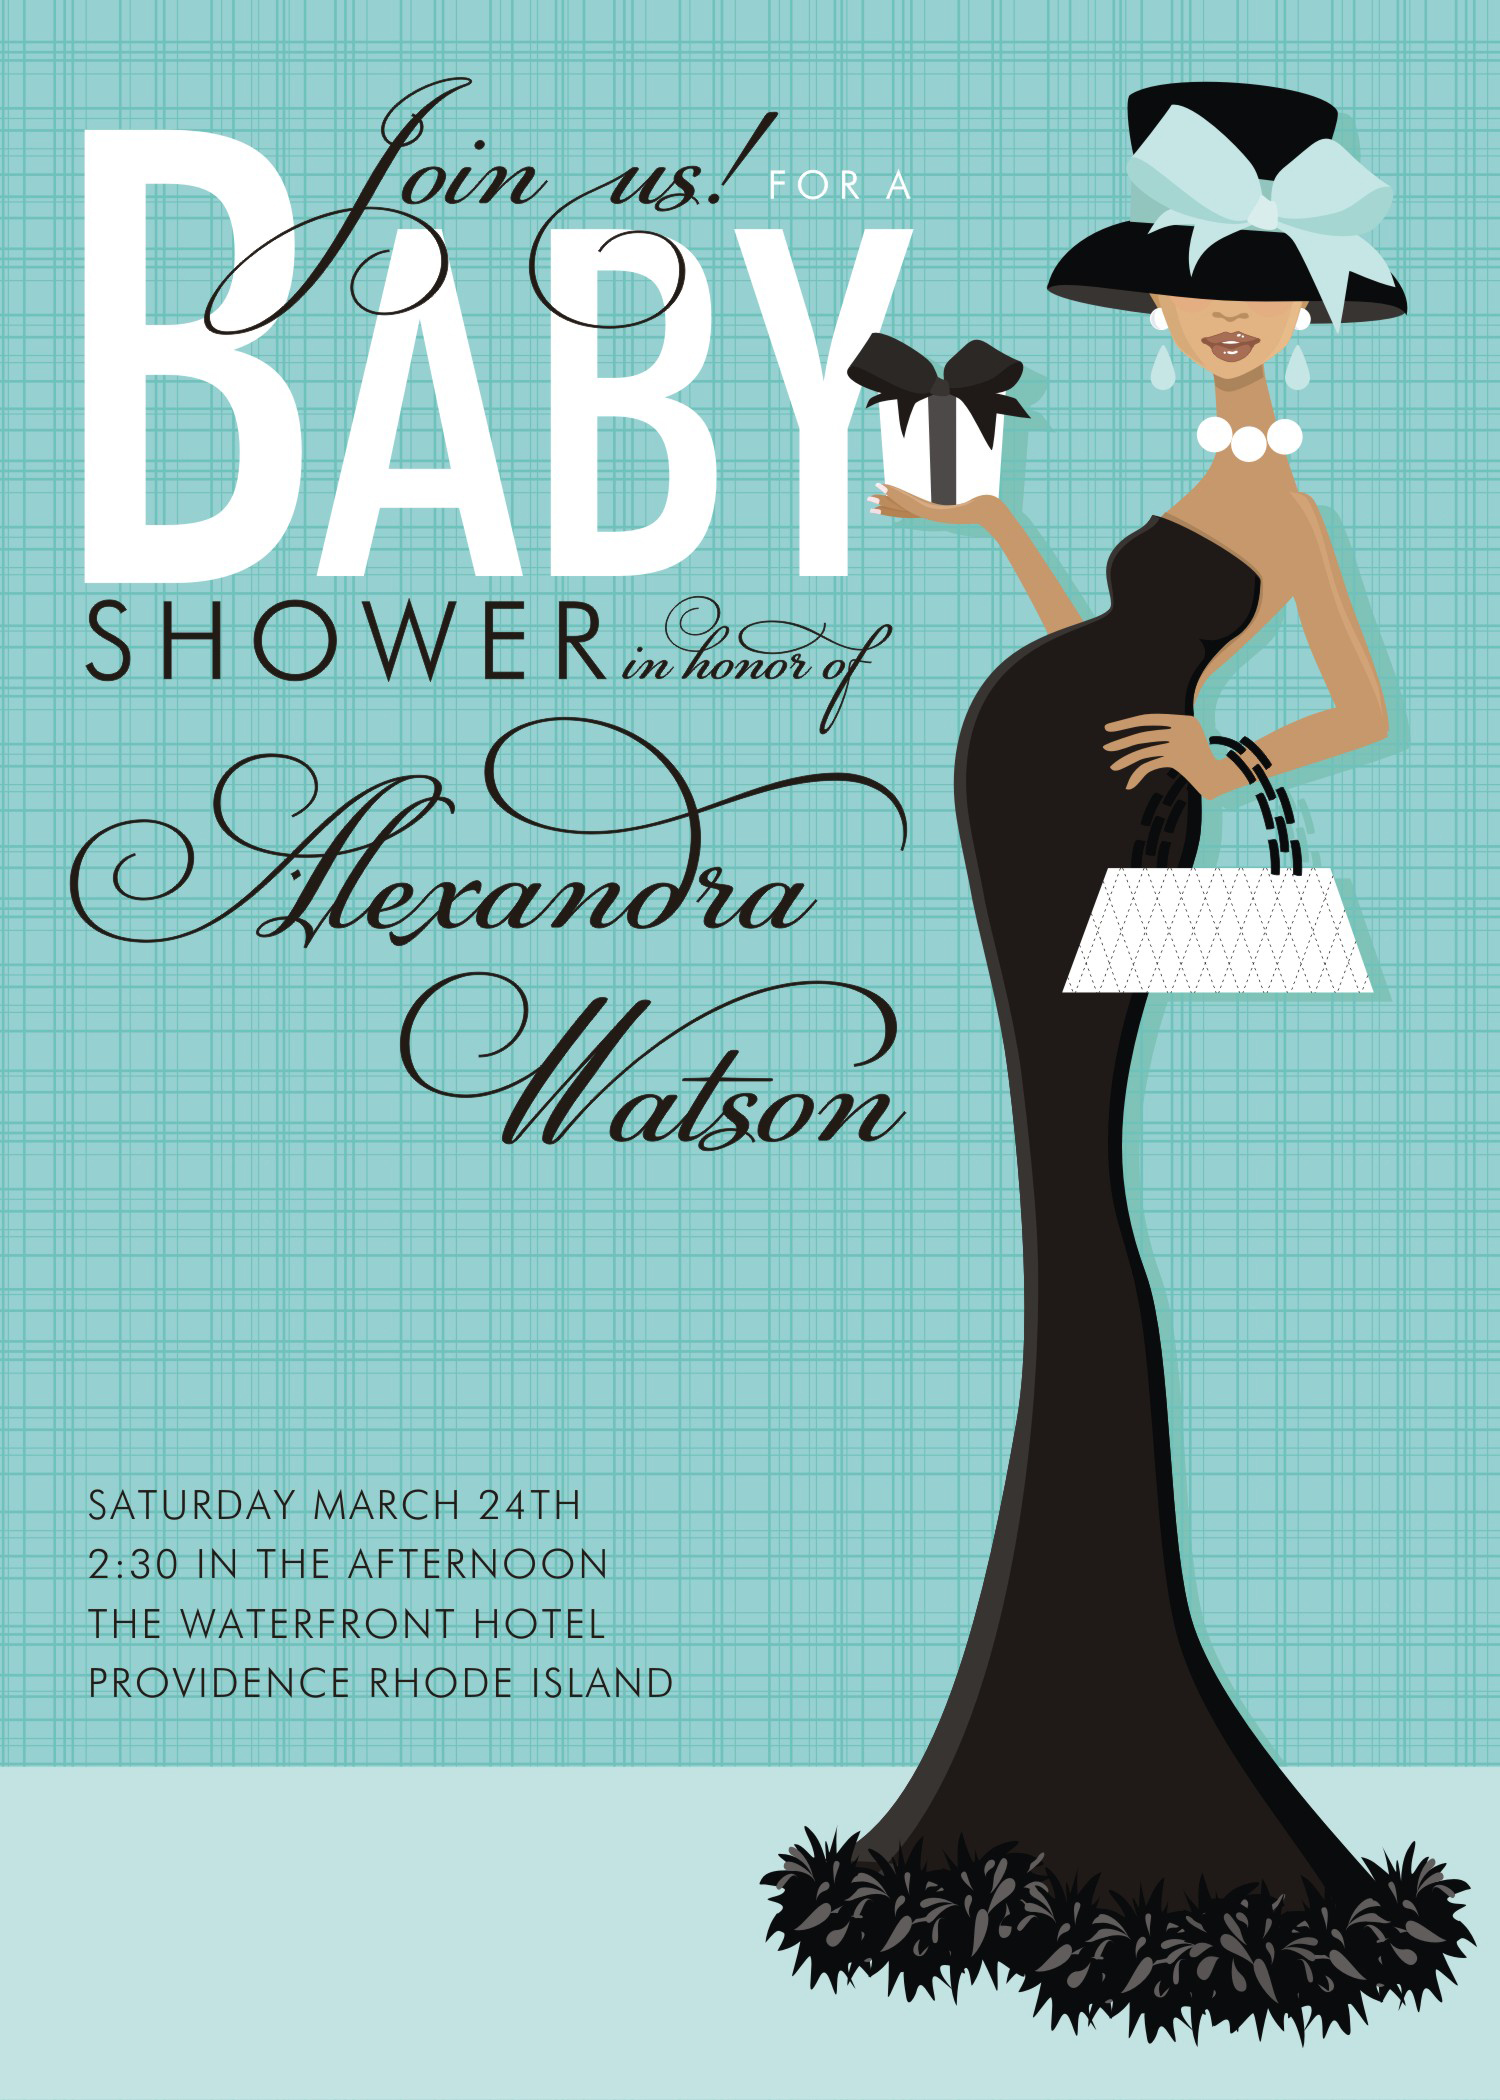 Baby shower postcard template jeppefm baby shower postcard template filmwisefo Gallery